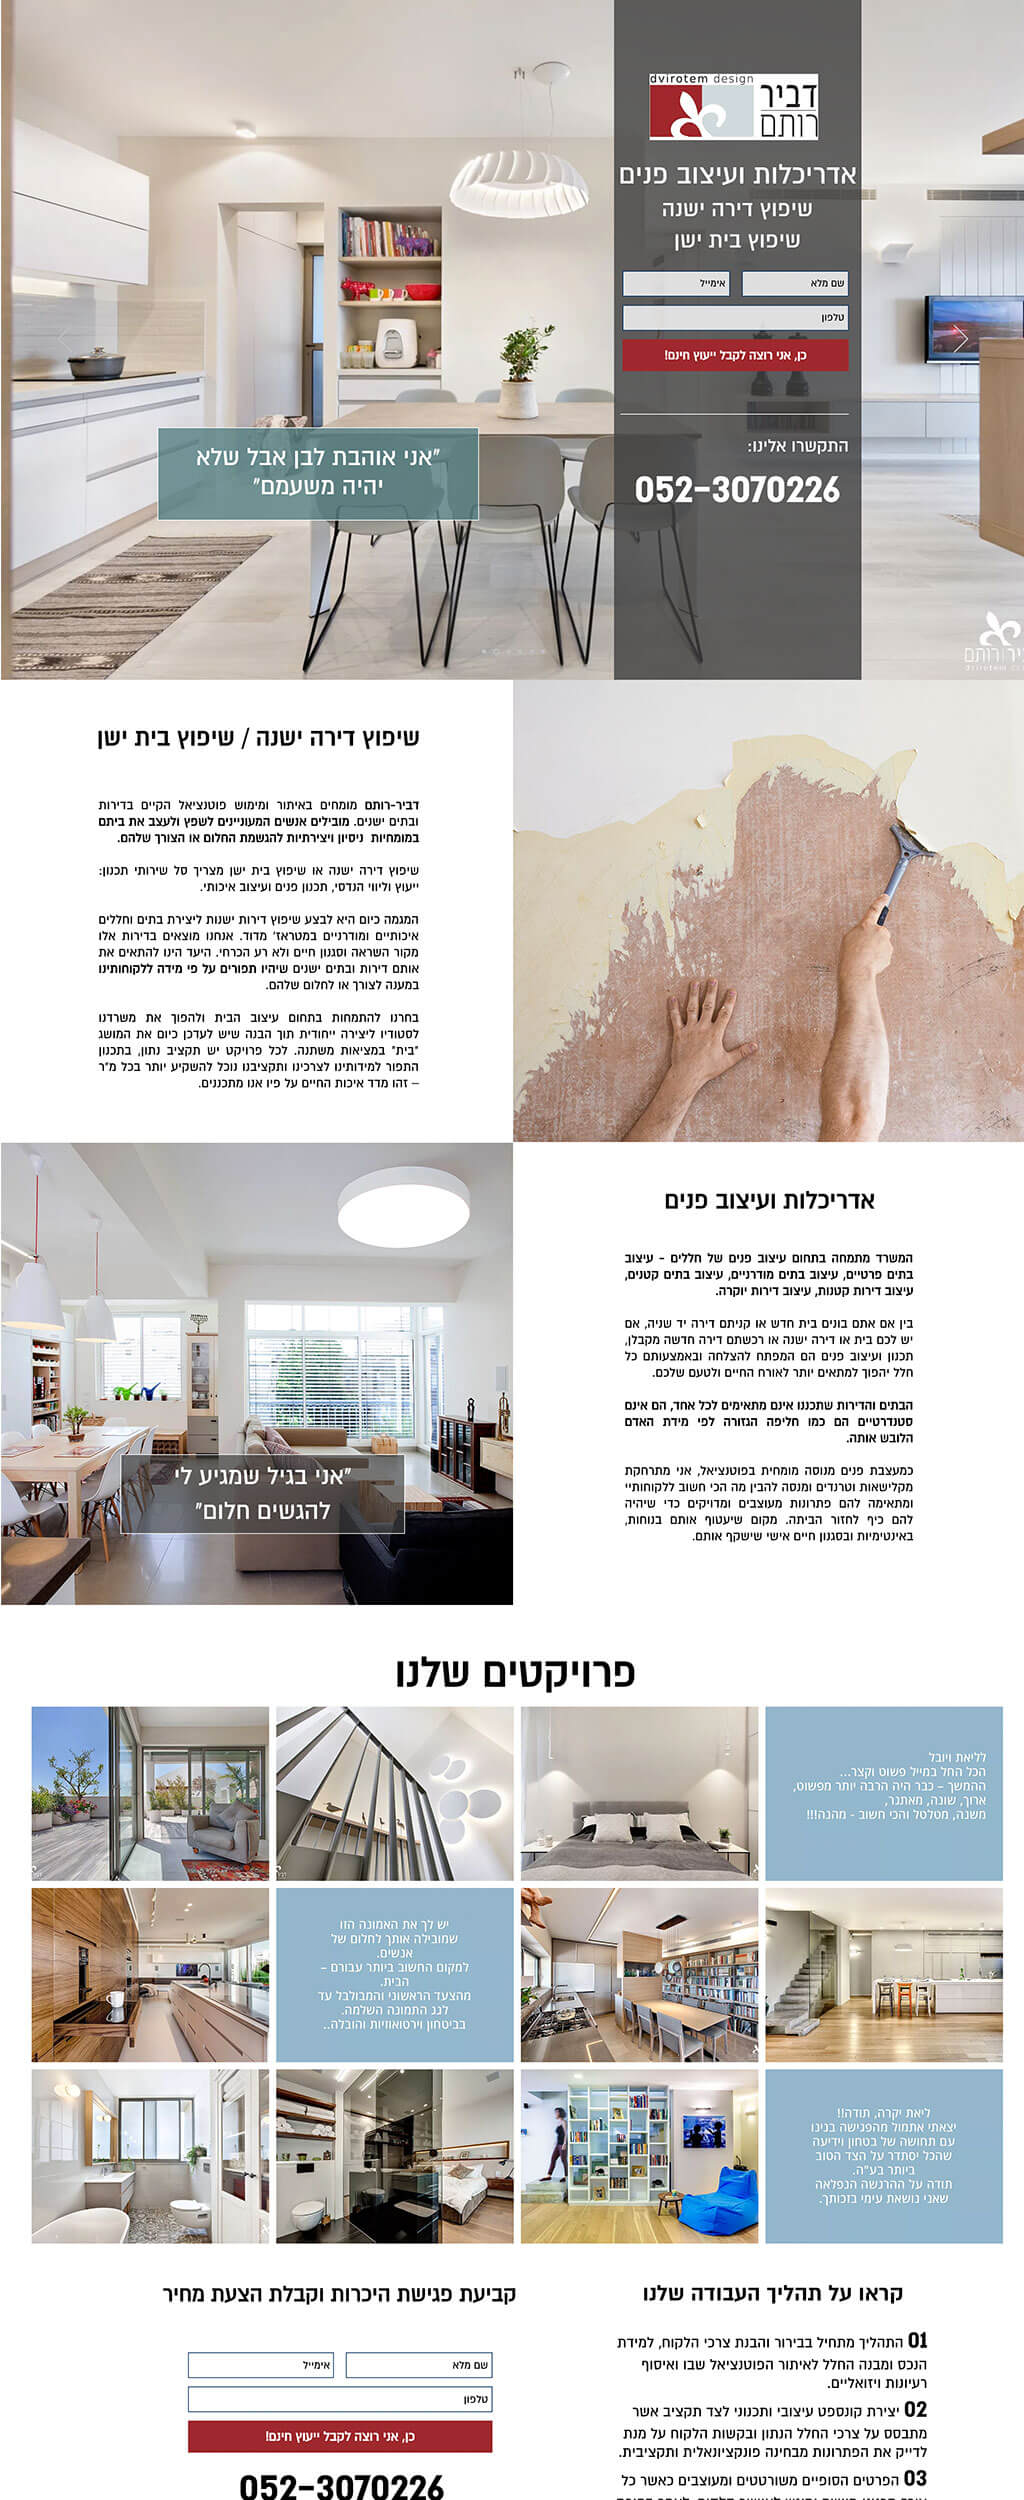 Dvirotem Architecture and Interior Design